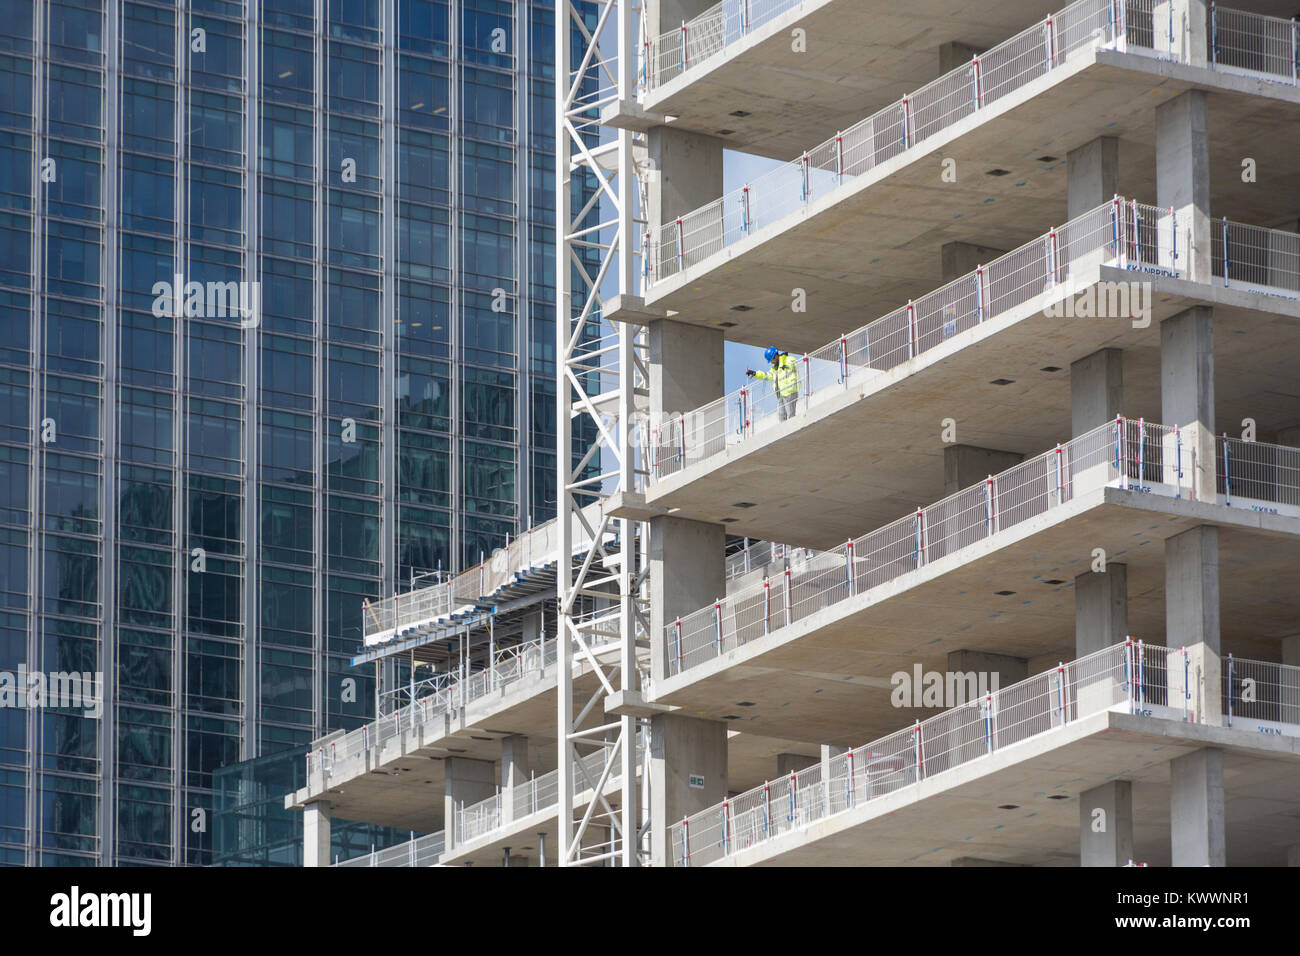 Construction workers and crane at work buildi construction site in London Docklands area at Canary Wharf - Stock Image